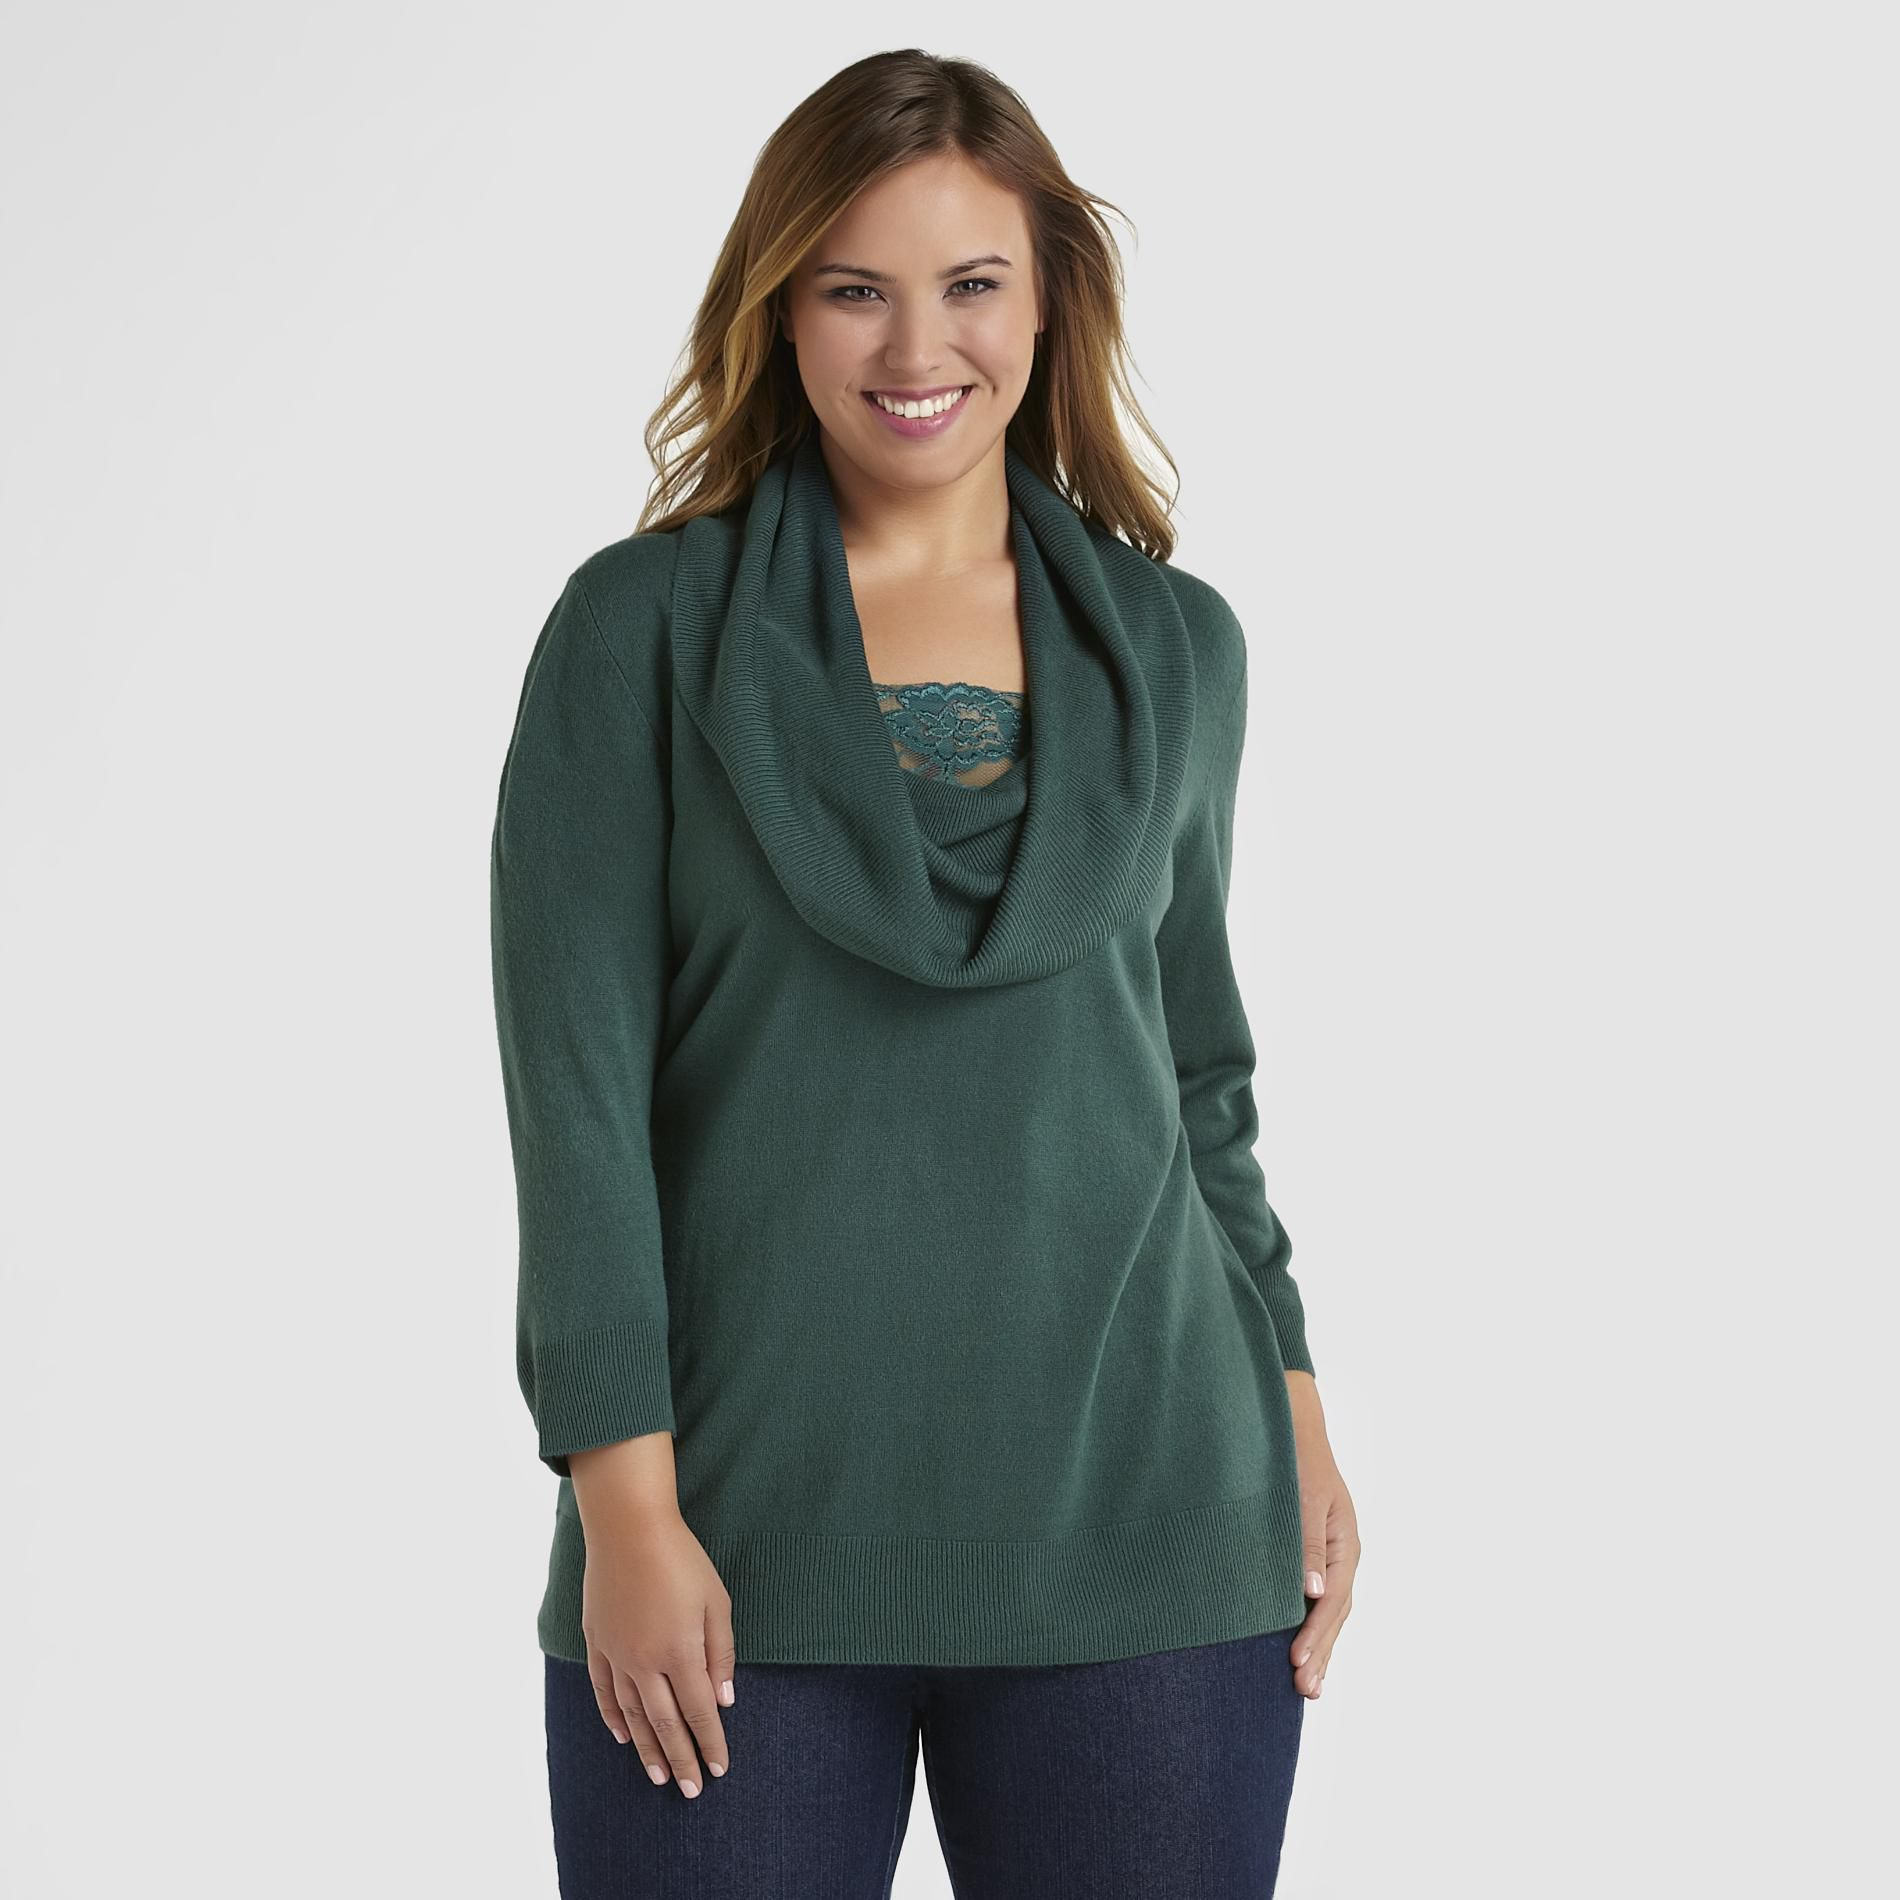 Basic Editions Women's Cowl Neck Sweater at Kmart.com